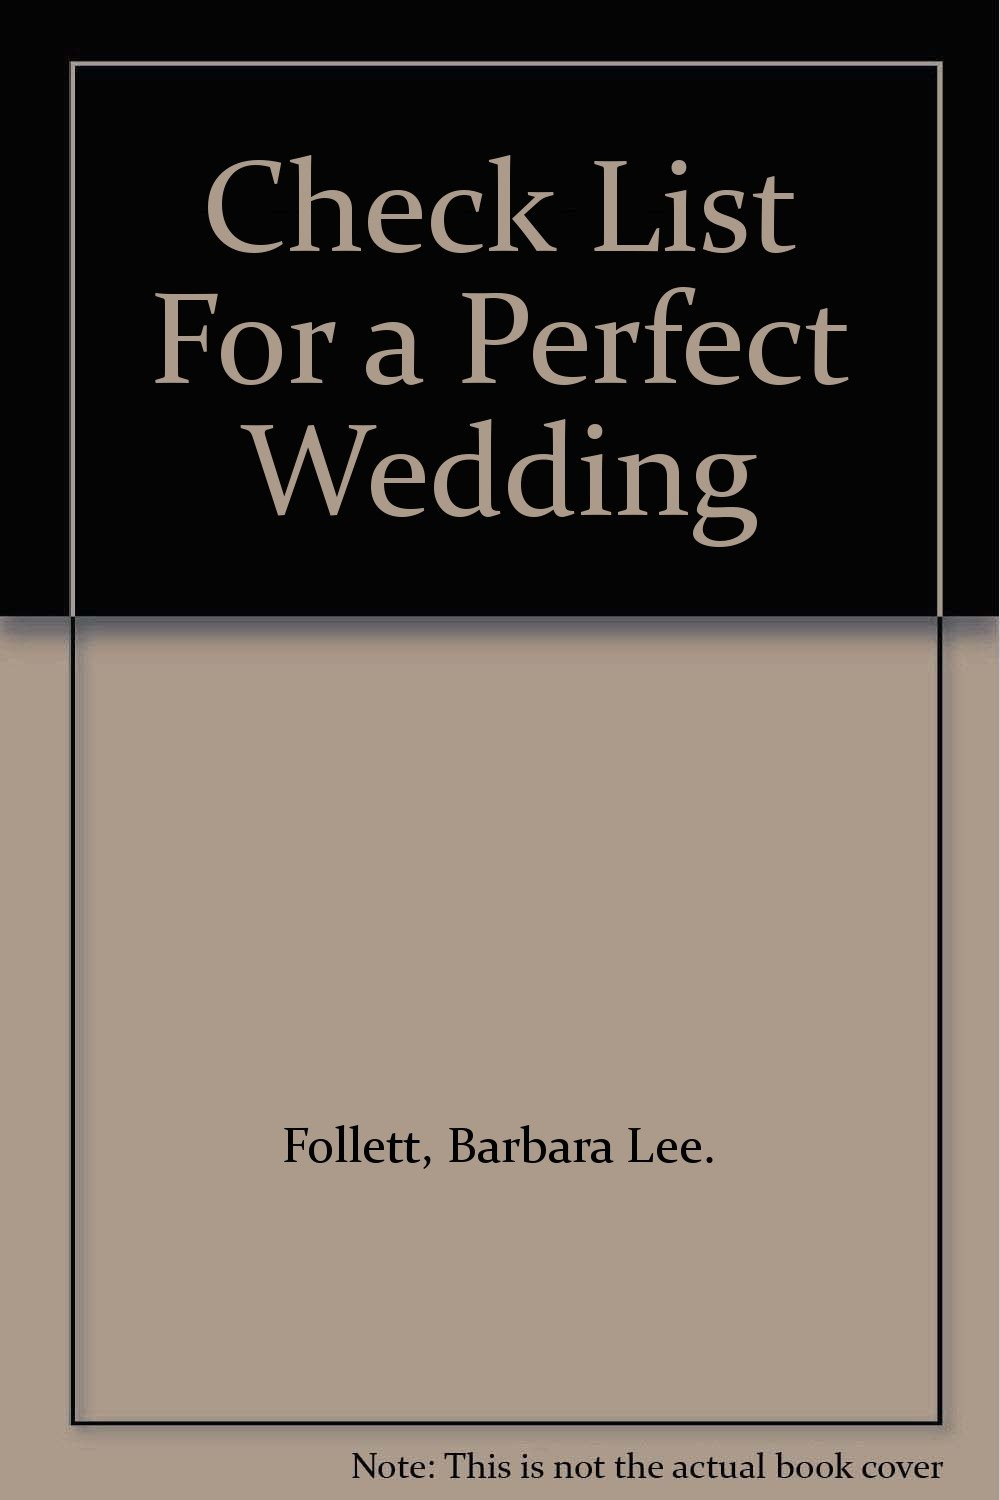 Check List For a Perfect Wedding